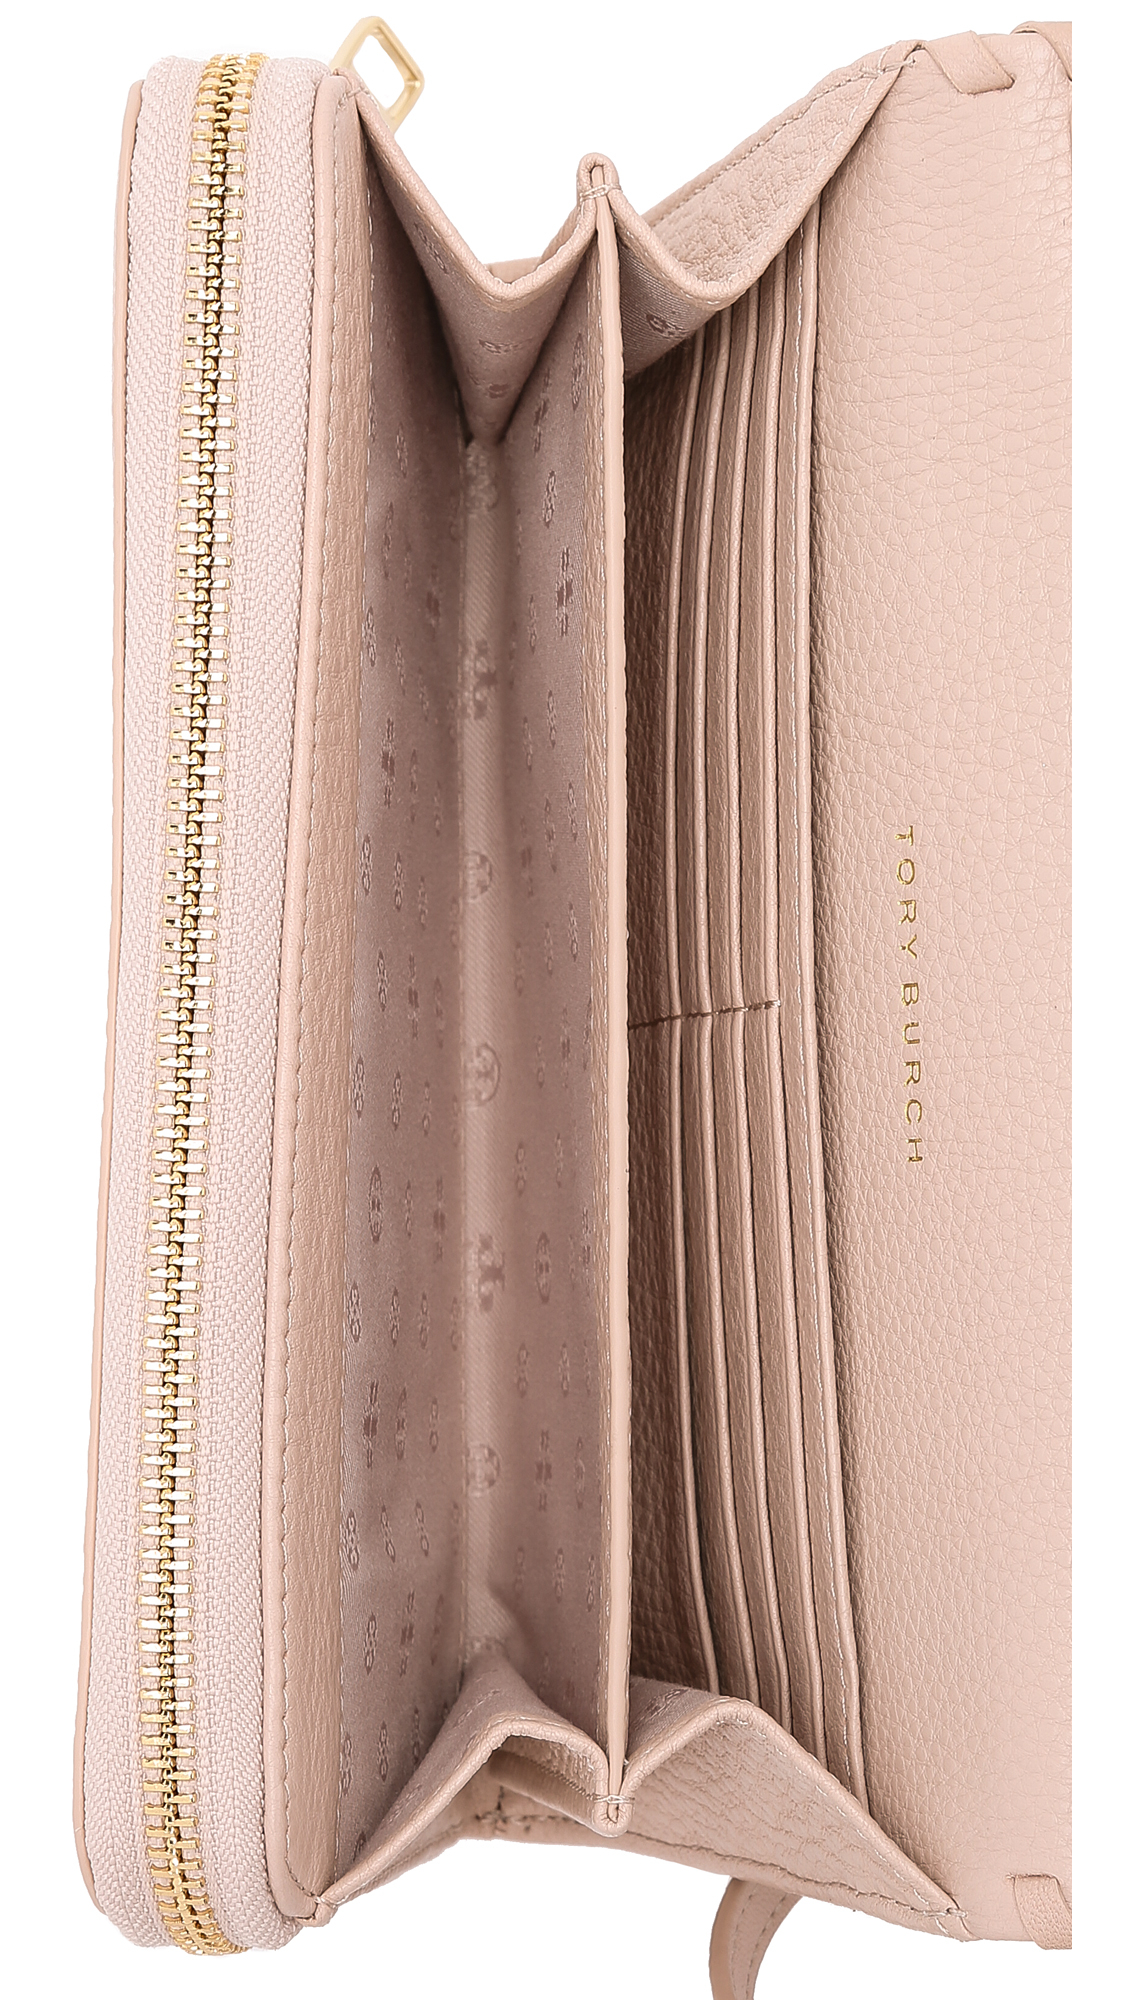 48347275b22e Lyst - Tory Burch Marion Flat Wallet Cross Body Bag - Bark in Natural